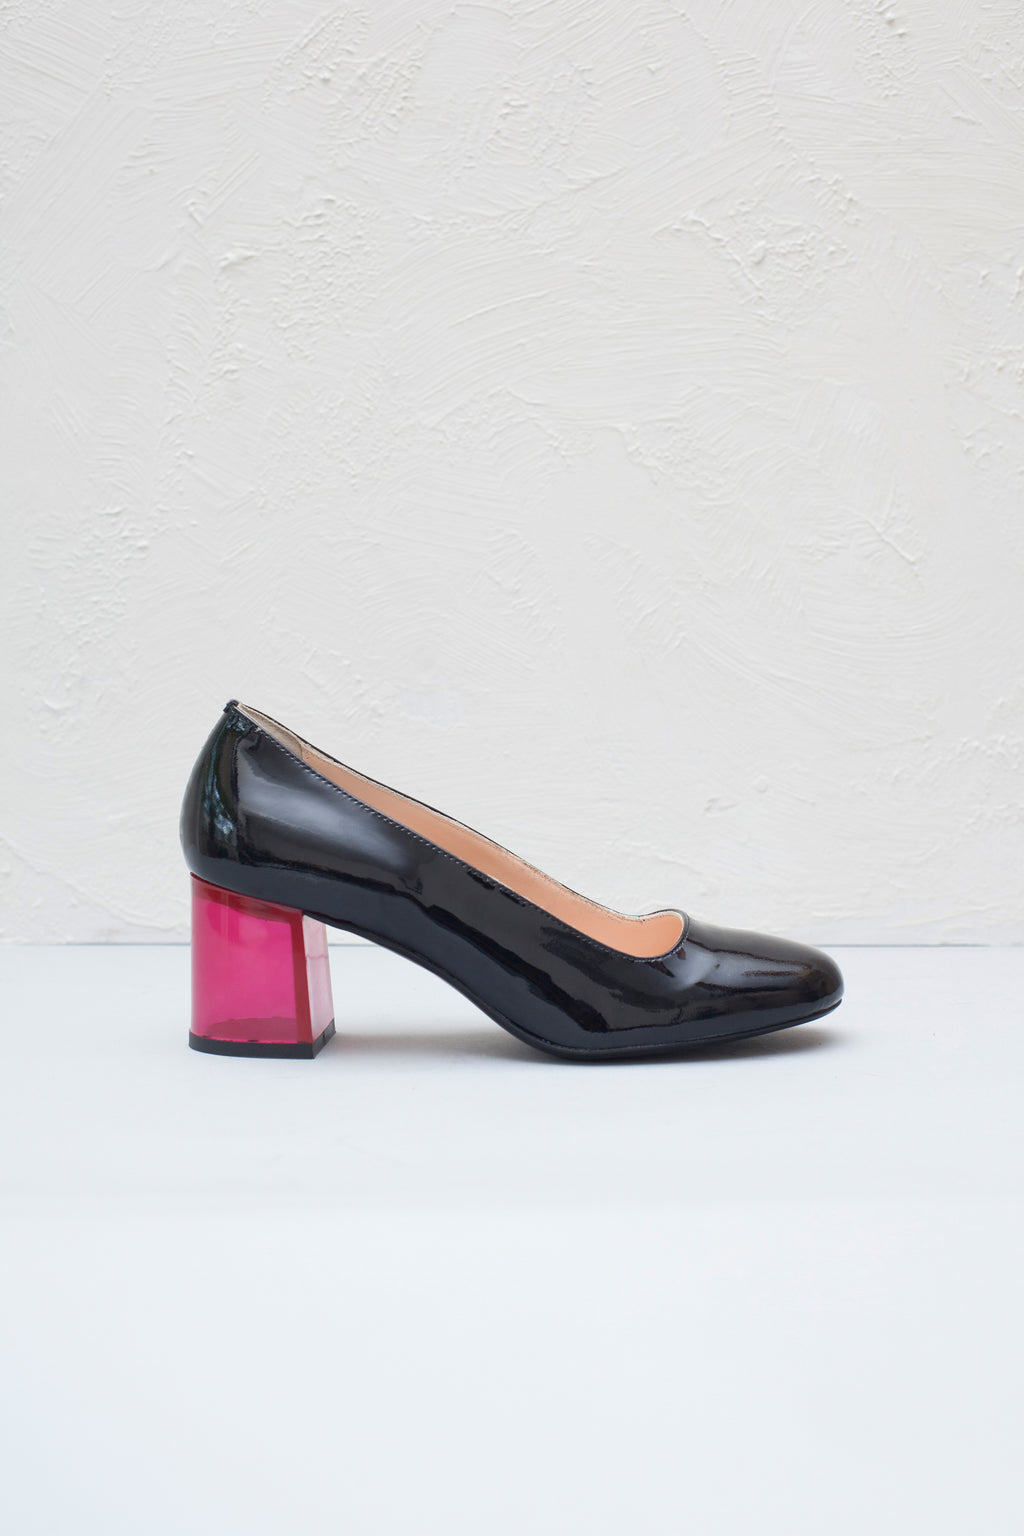 Moneypenny black patent pumps with fuscia pink clear lucite heel. By Miss L Fire. Made in Italy.